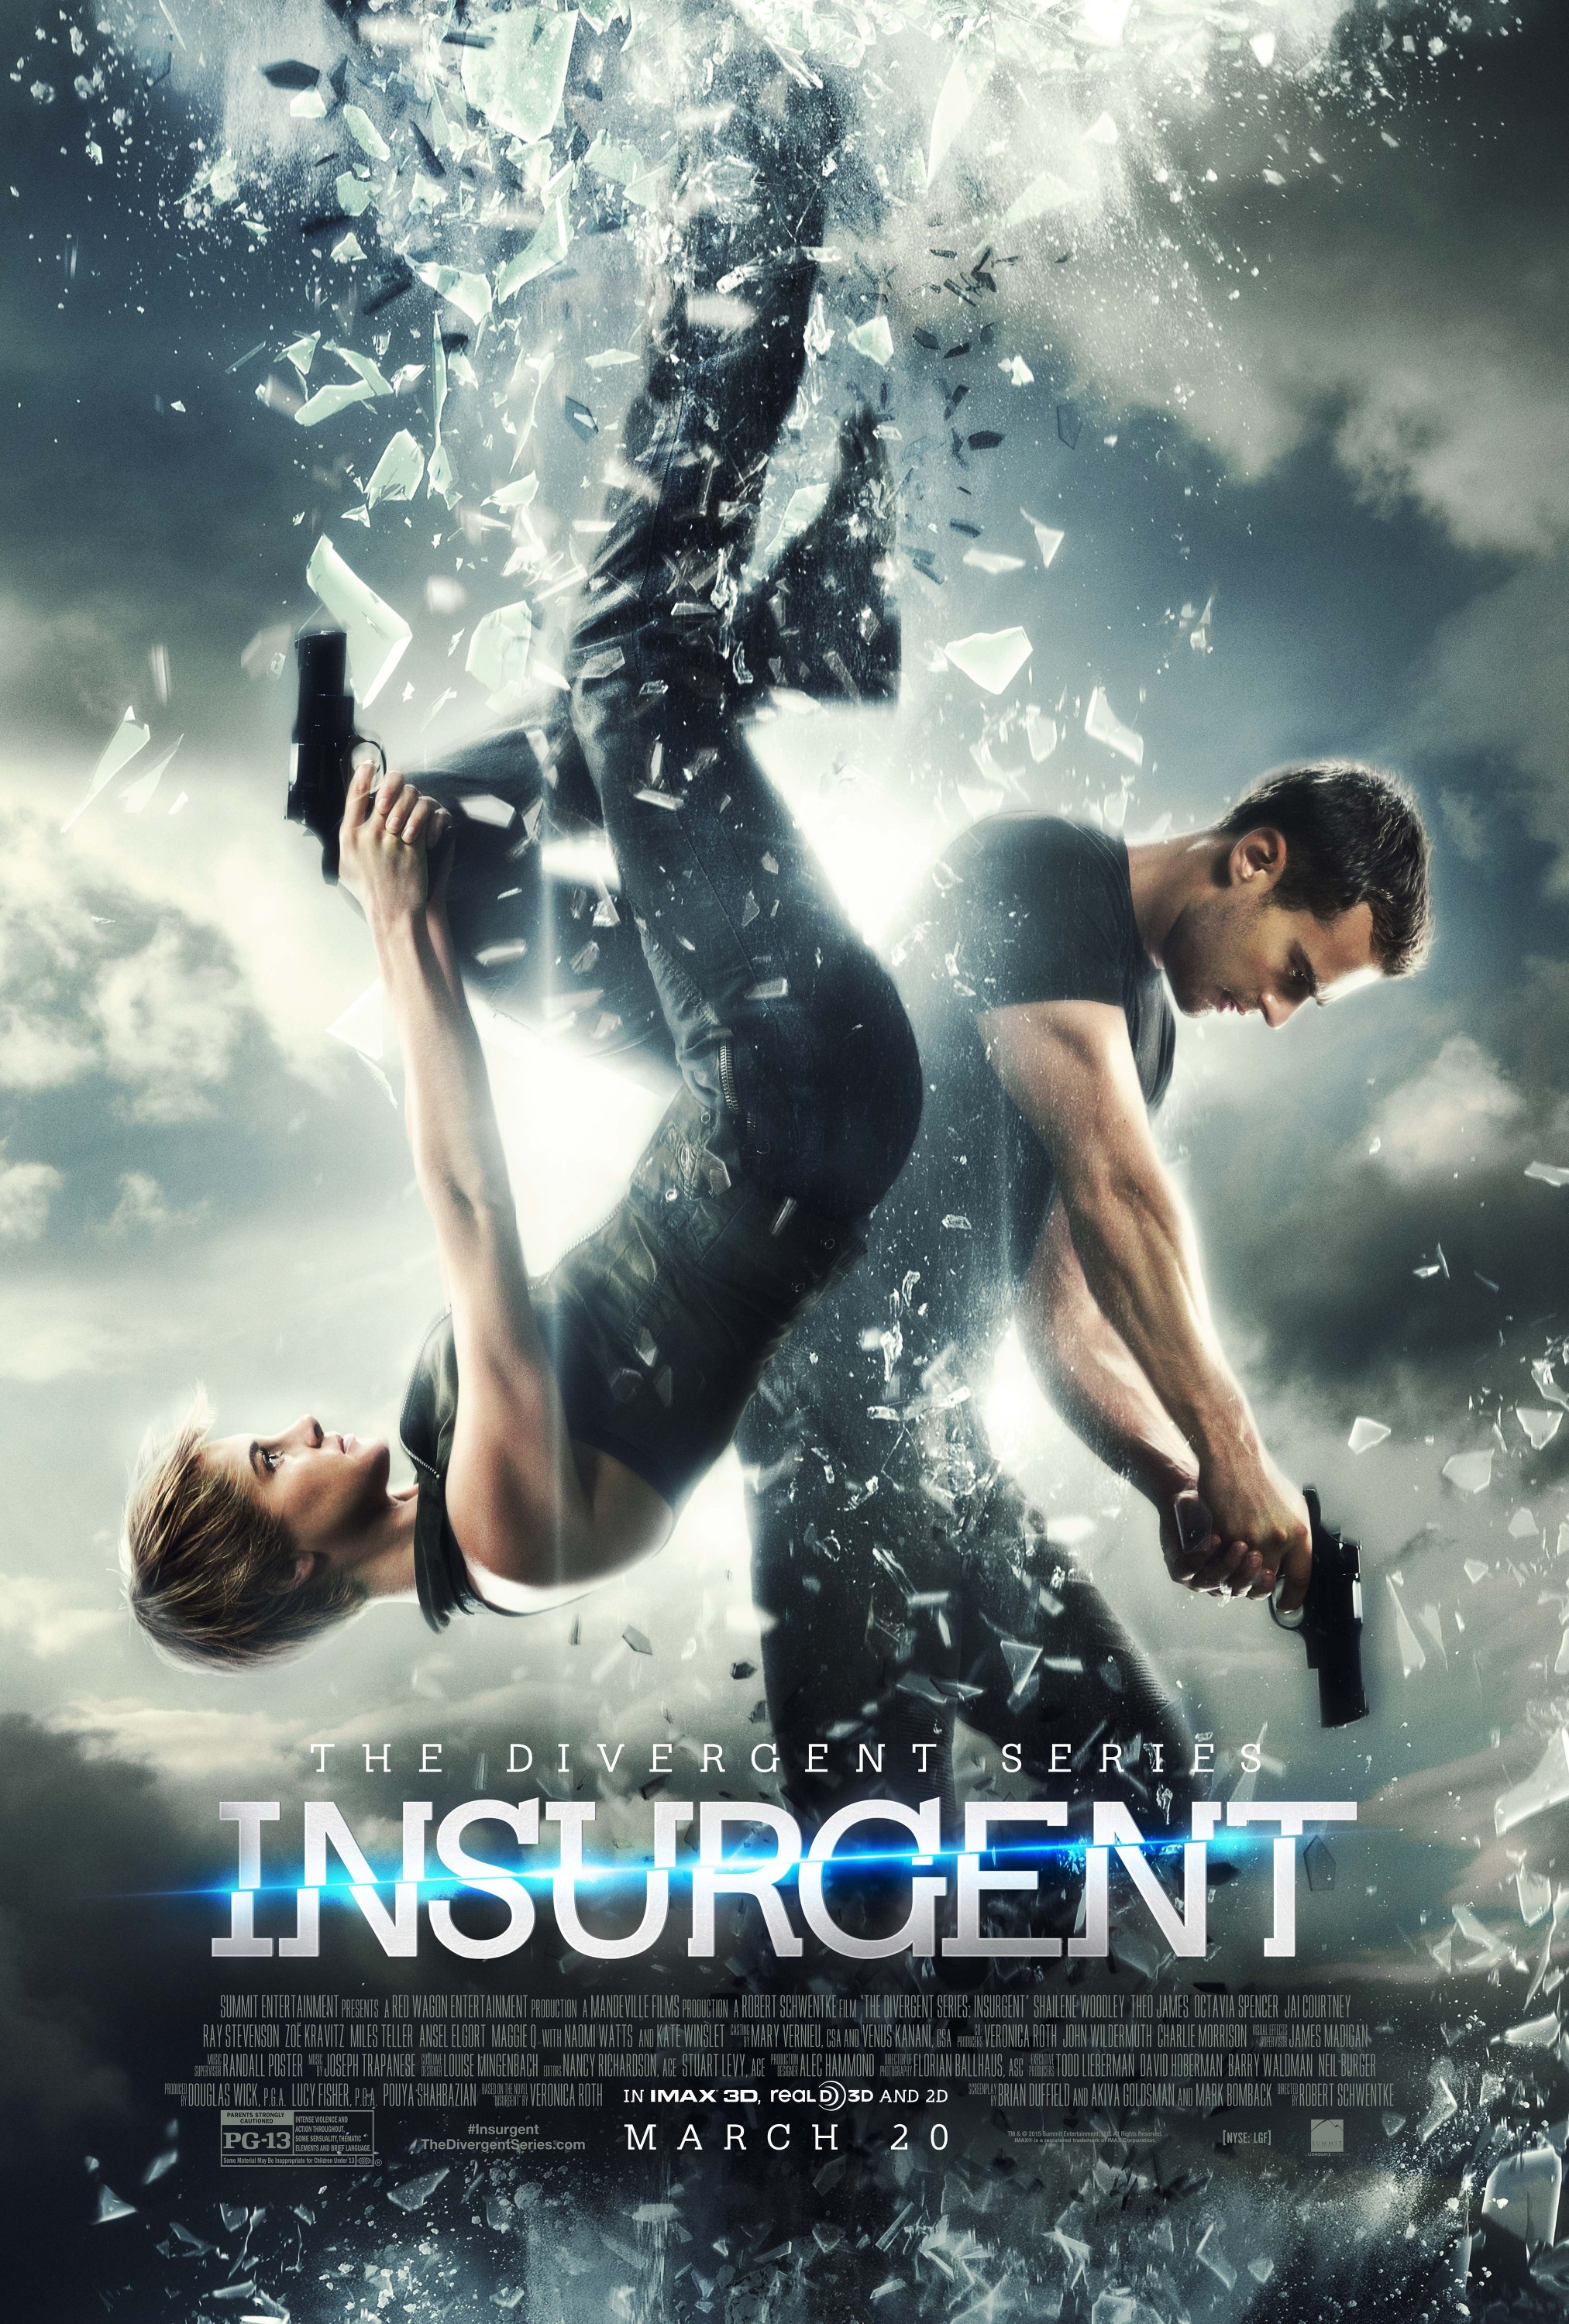 http://lounge.obviousmag.org/aqui_e_acola/insurgent_ver16_xxlg.jpg